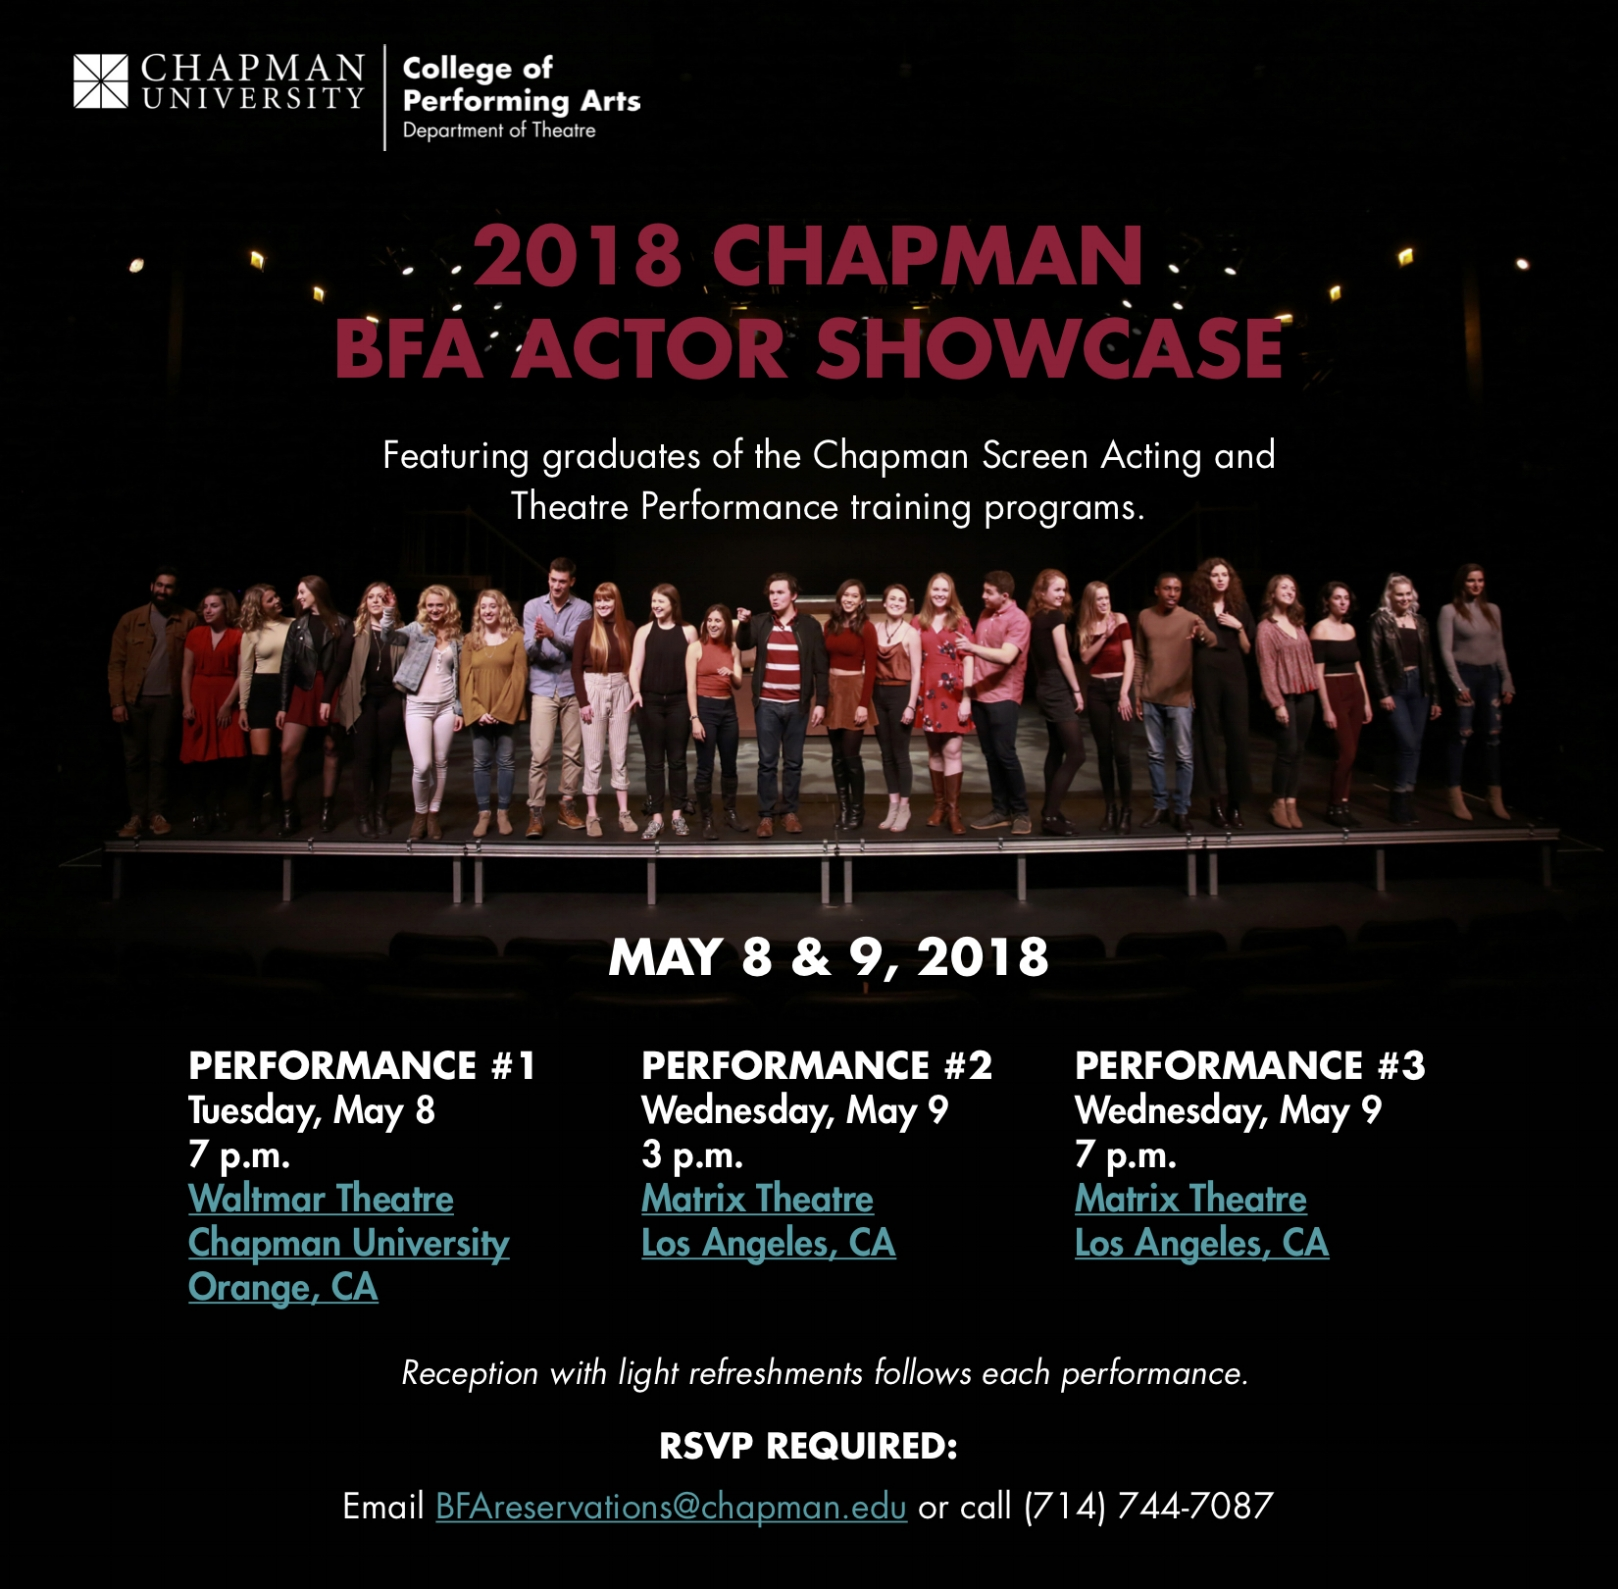 2018 Chapman BFA Actor Showcase Invitation.jpg